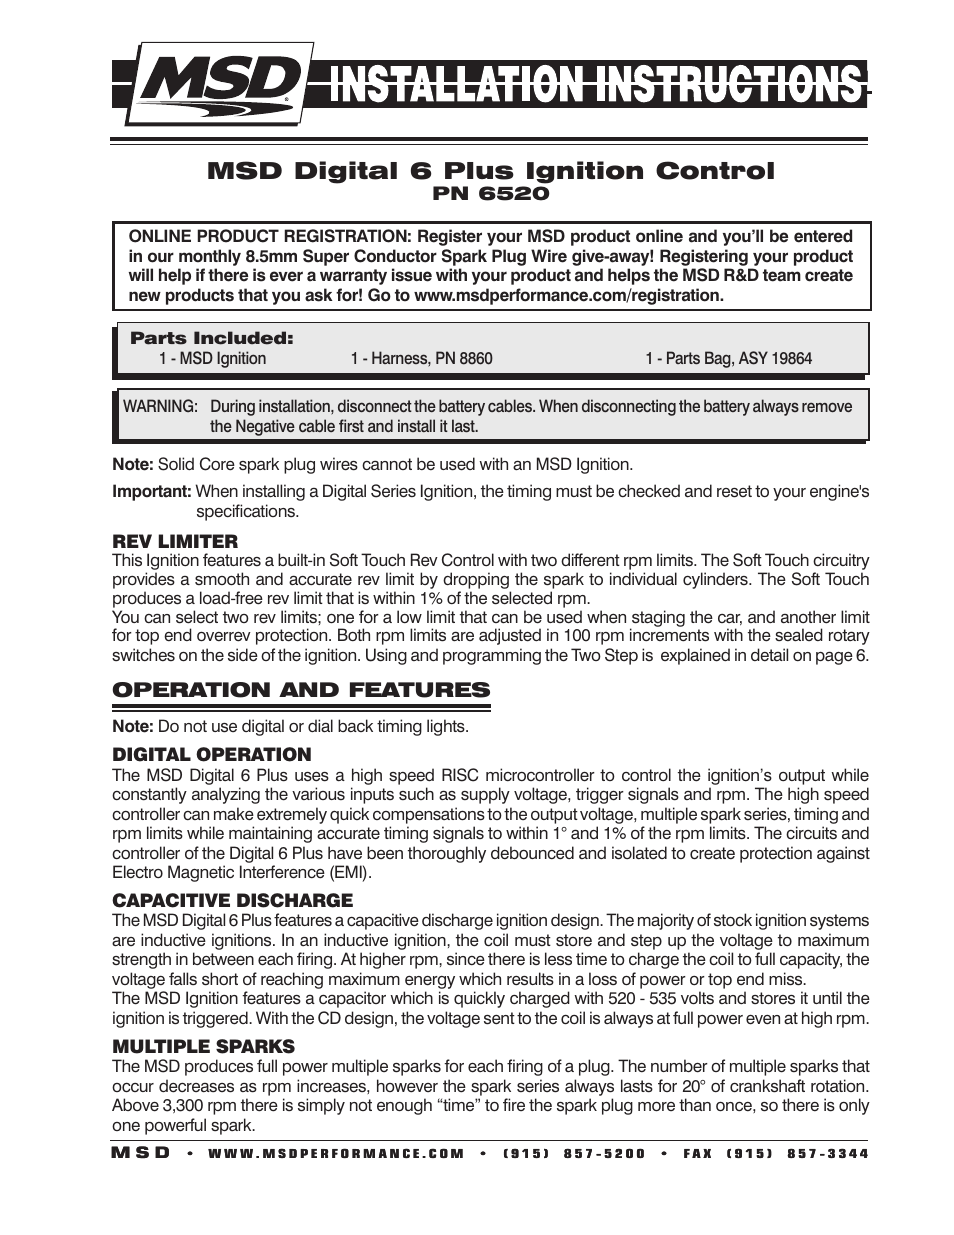 msd 6520 digital 6 plus ignition control installation page1?resize\\\\\\\\\\\\\\\\\\\\\\\\\\\=665%2C861 msd street fire ignition wiring diagram chevy wiring diagrams MSD 6A Wiring-Diagram at gsmx.co